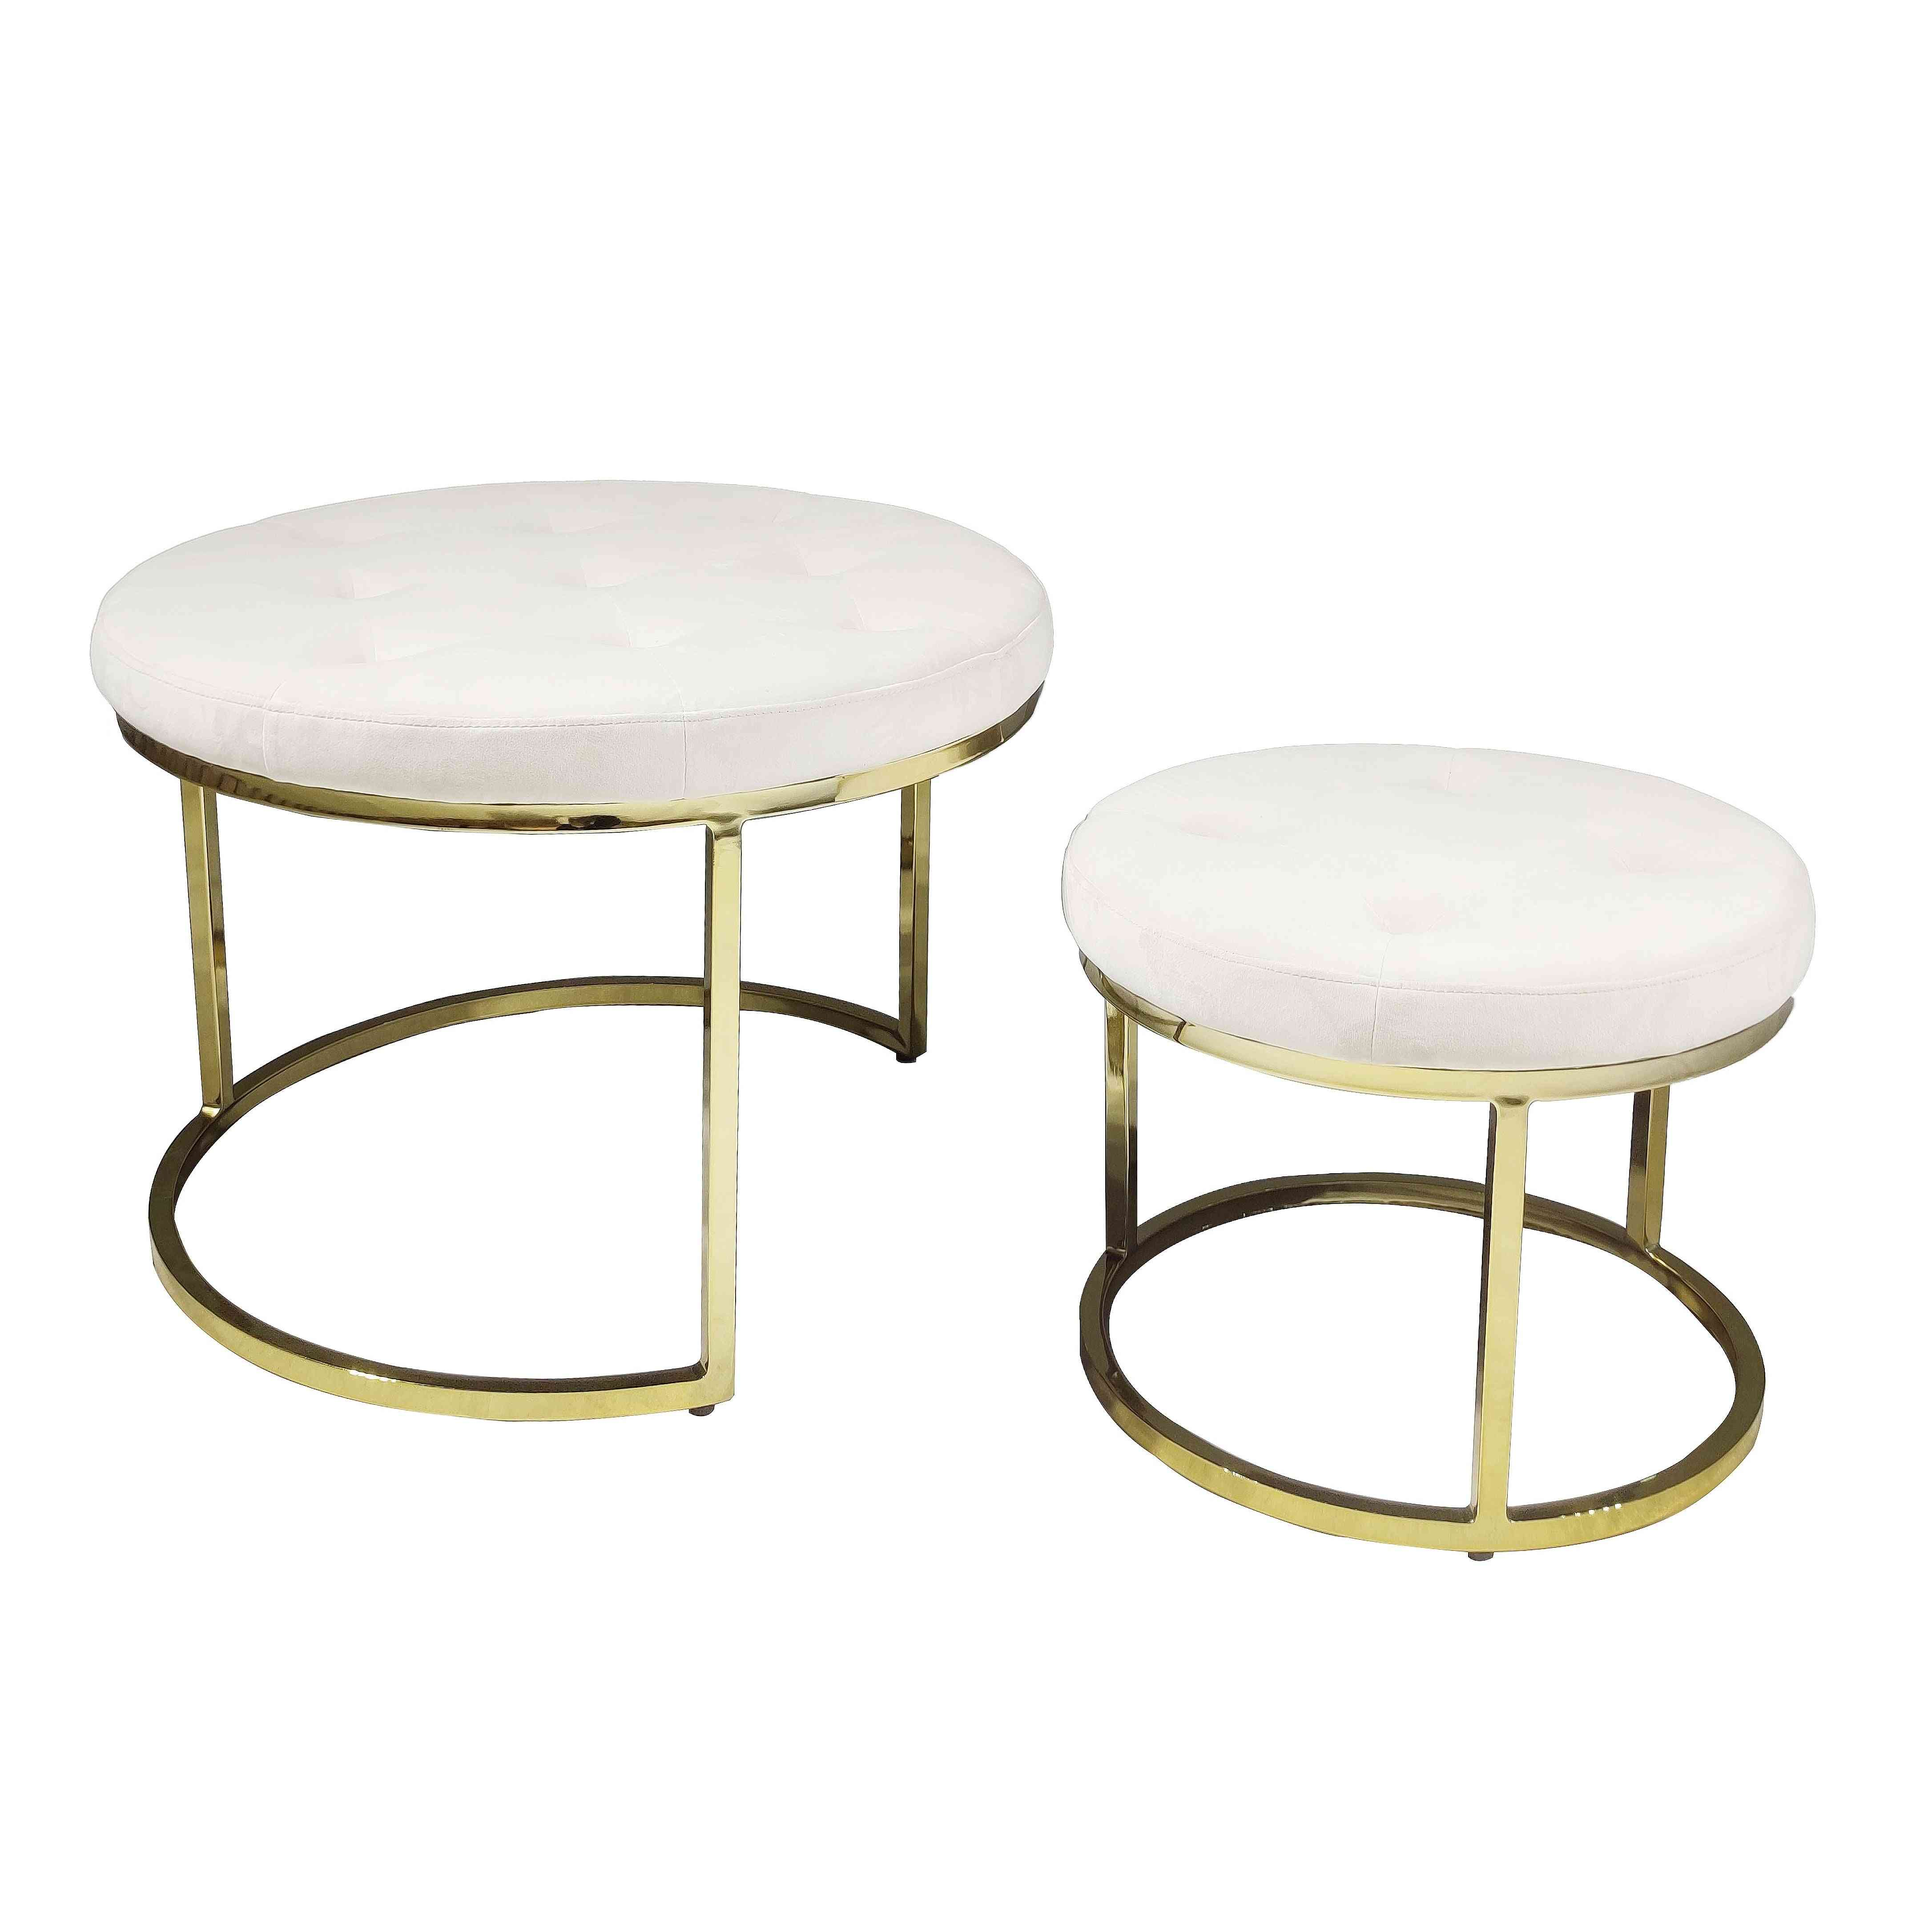 Manufacturing Factory Modern Light Stainless Steel Foot Stool